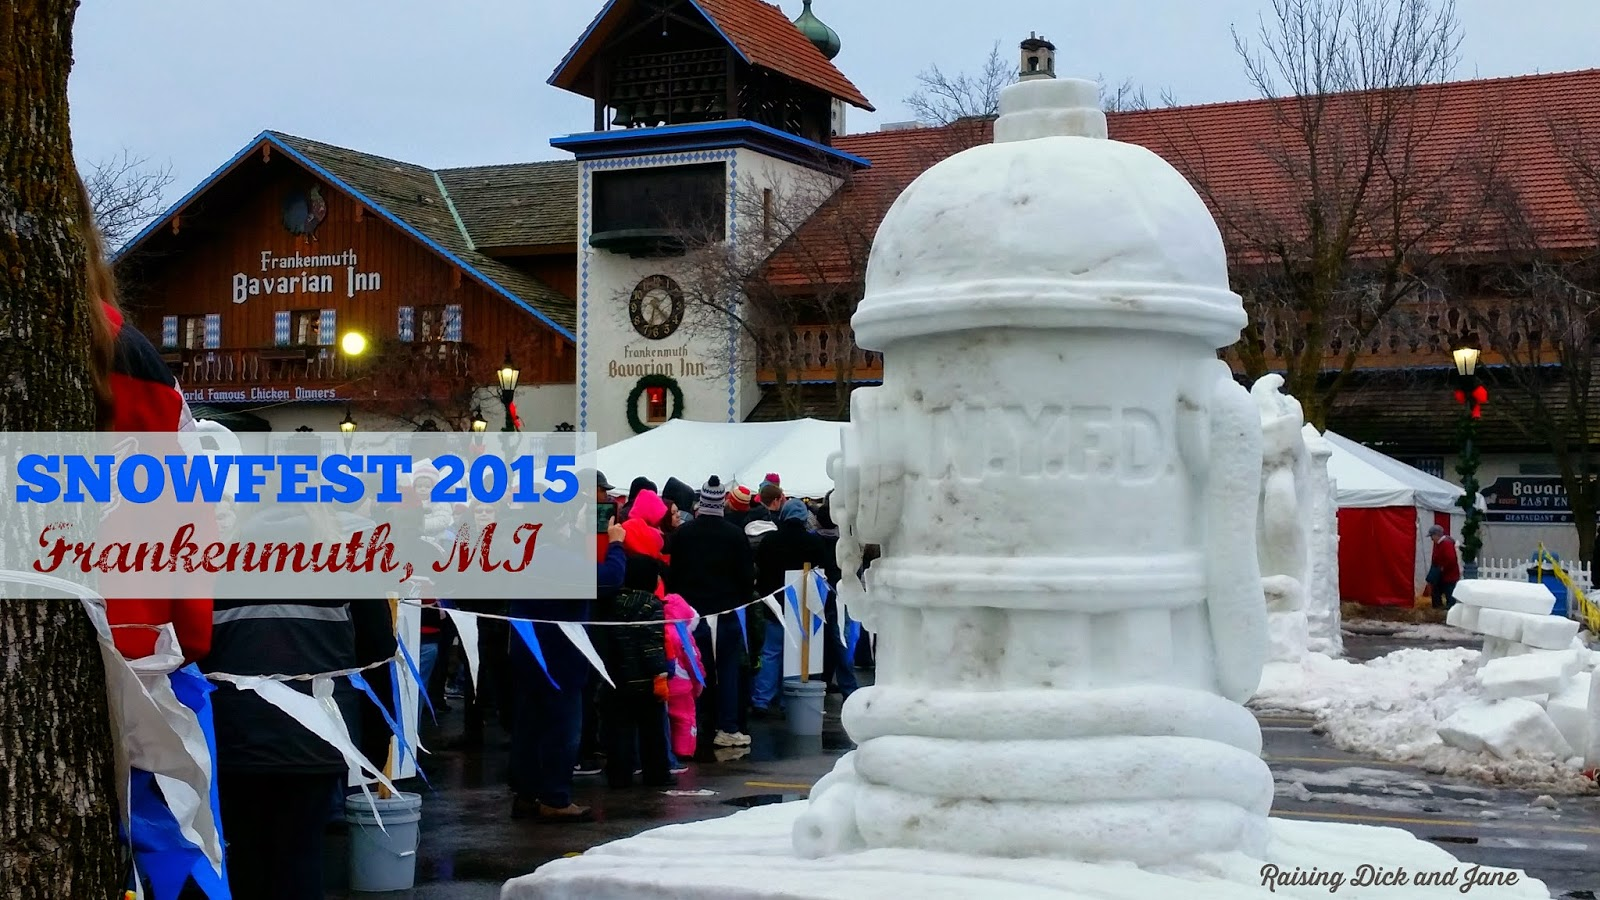 Pictures of SNOWFEST 2015 Frankenmuth, MI